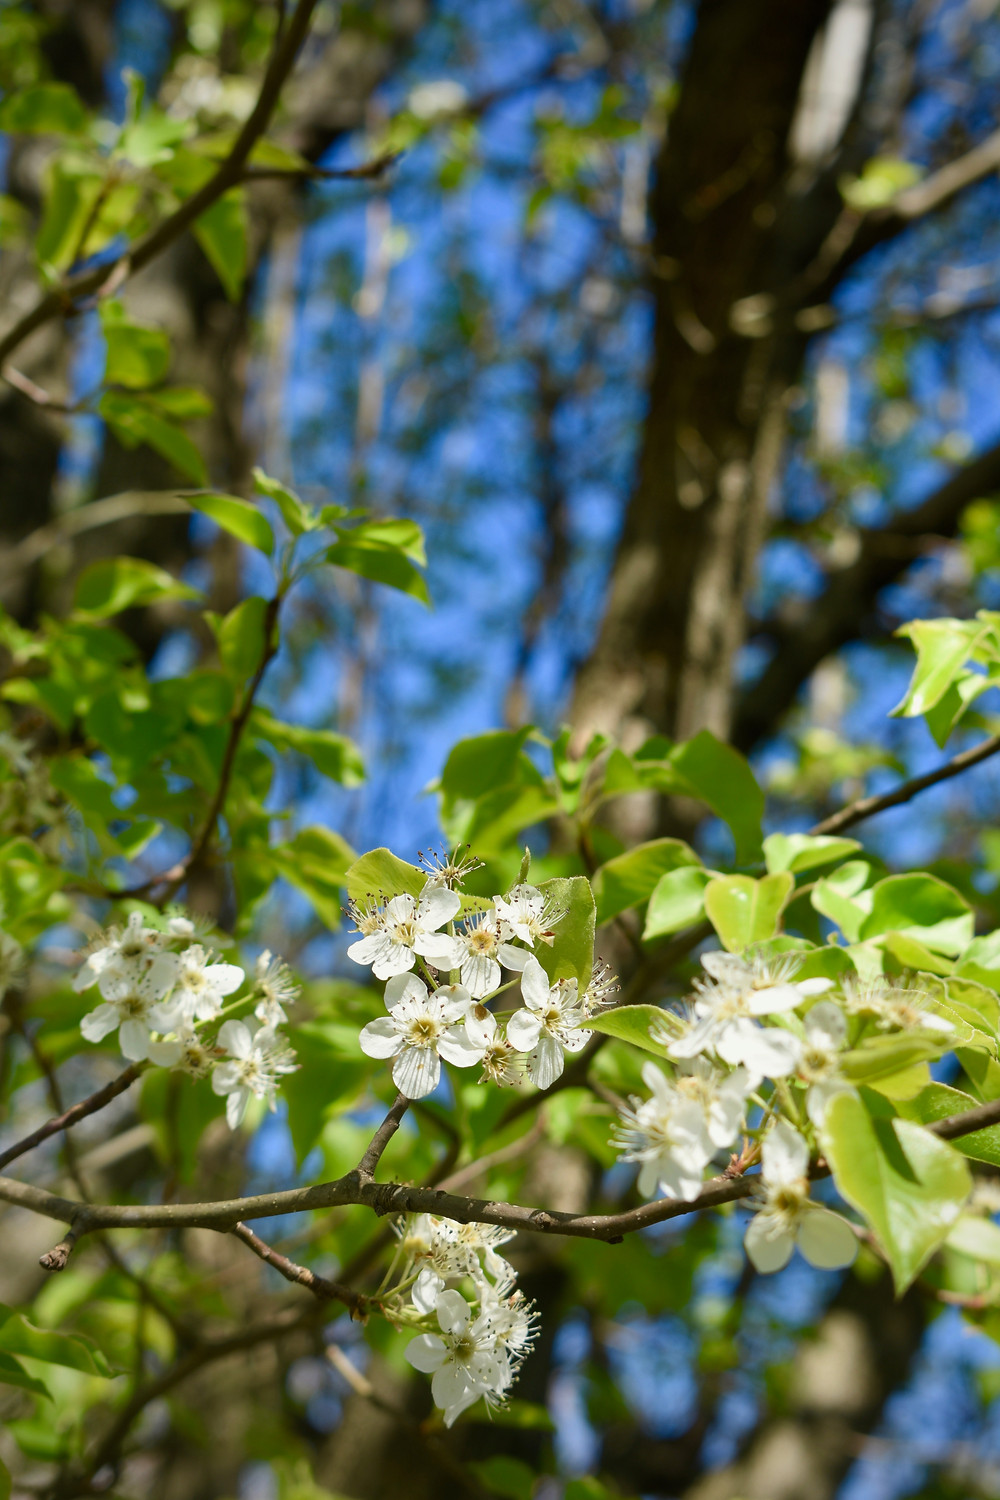 Flowers blooming on a tree in the sunshine.